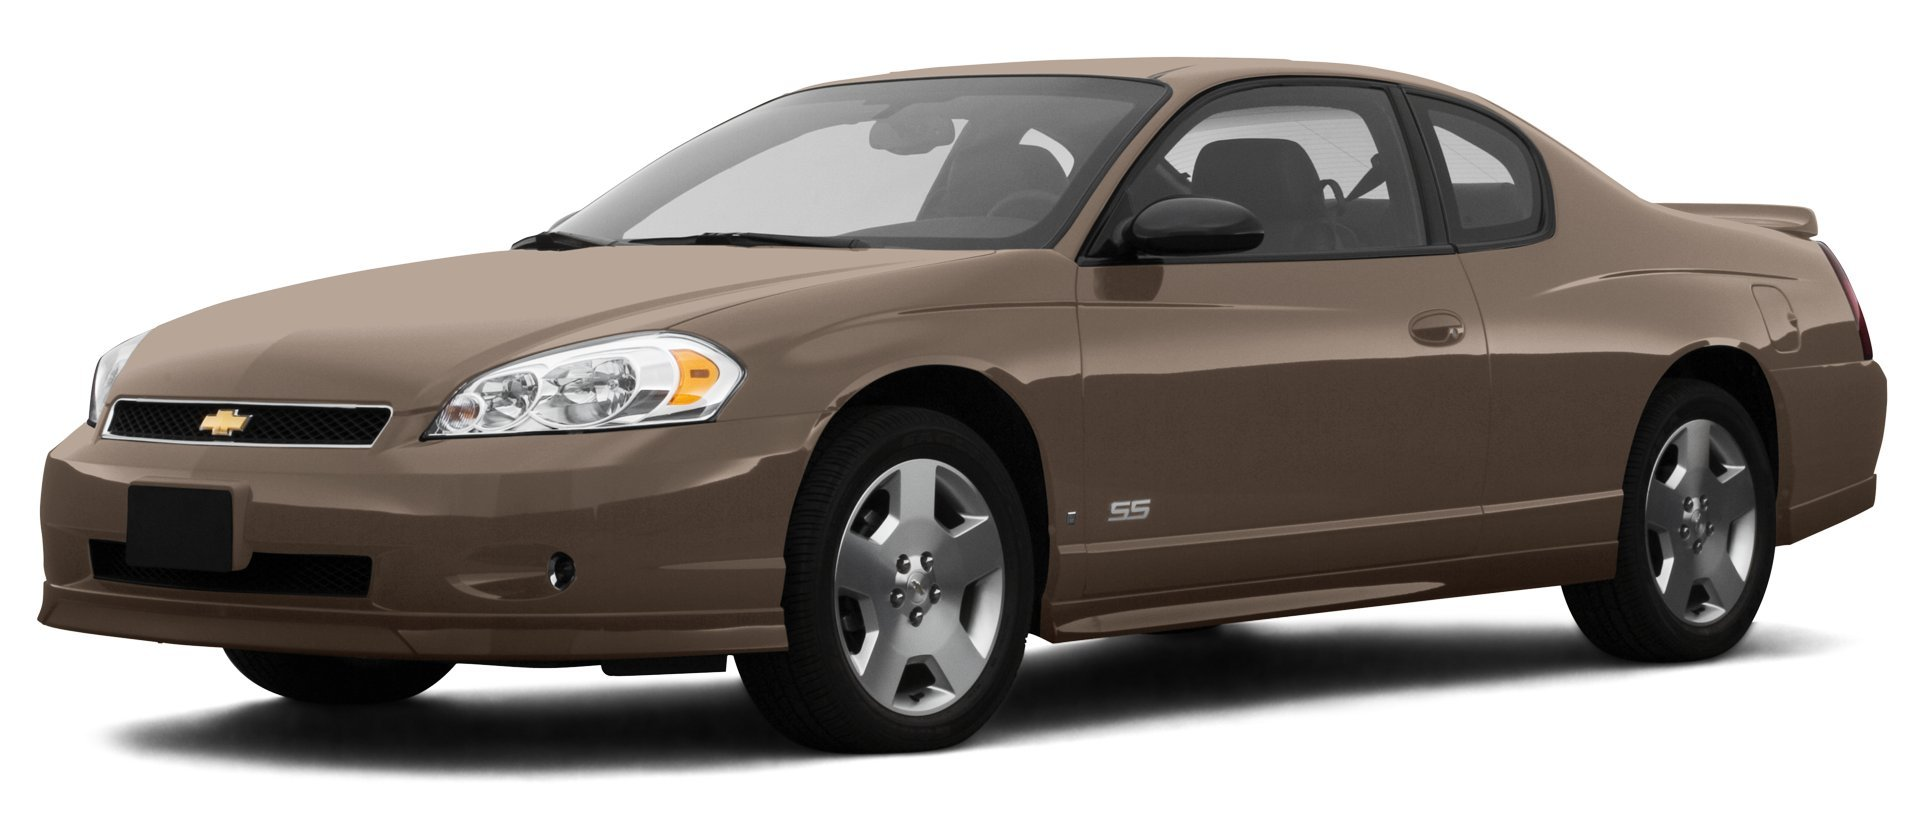 2007 Monte Carlo Ss 5 3 Engine Diagram Chevrolet Reviews Images And Specs Ls 2 Door Coupe